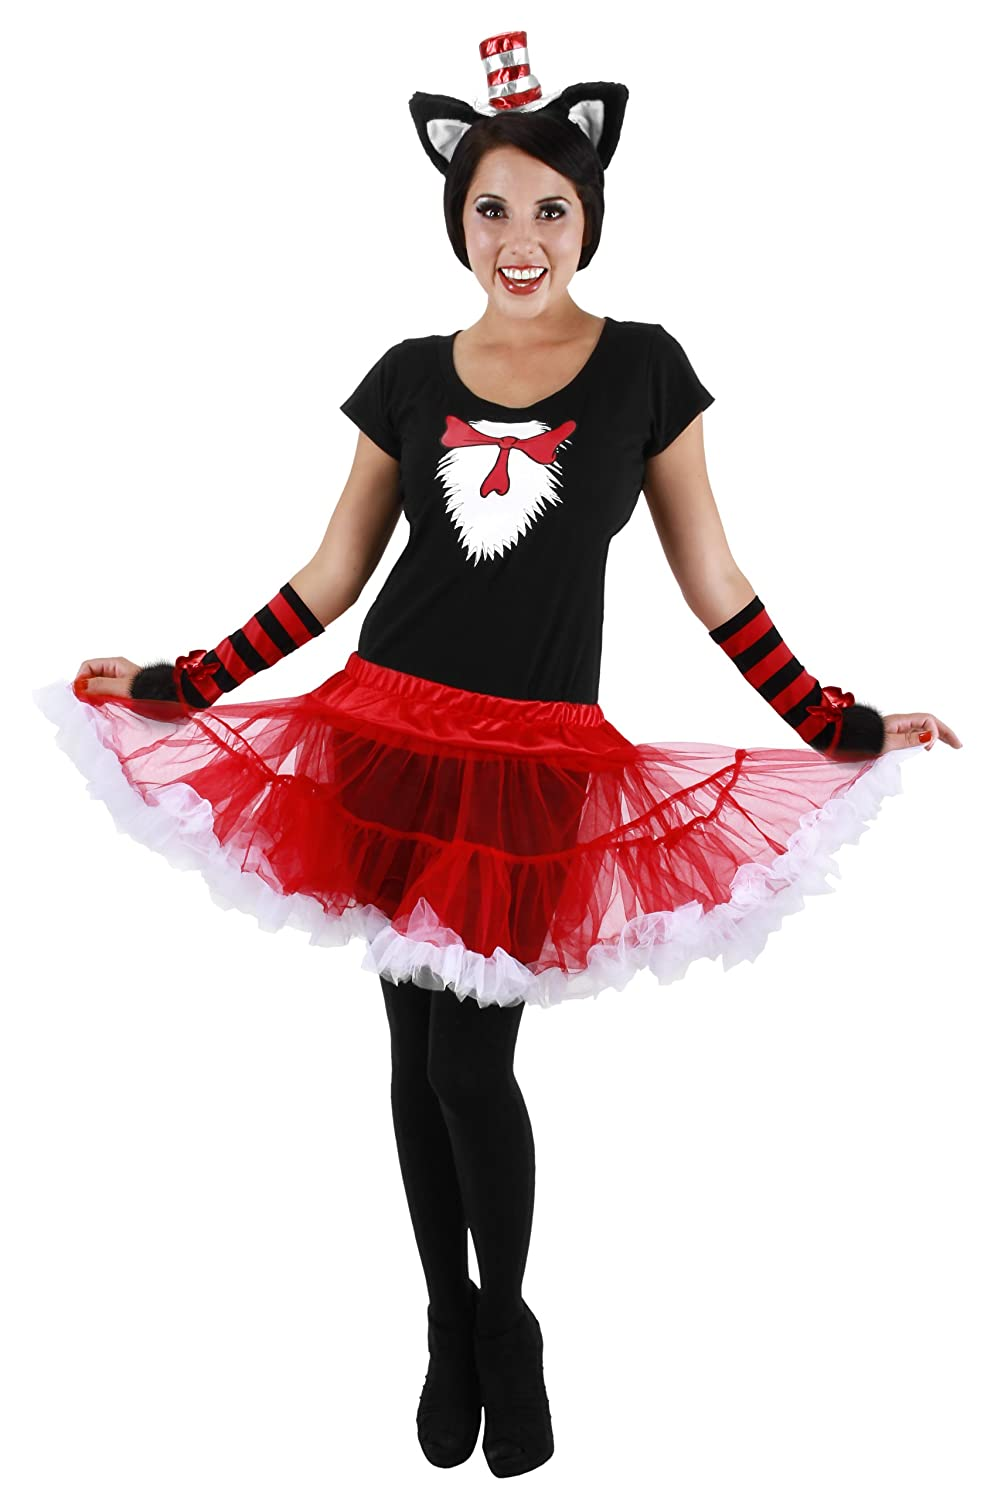 cat hat costume costumes halloween adults adult creepy comical tutu college zebra pet really womens someone would fun